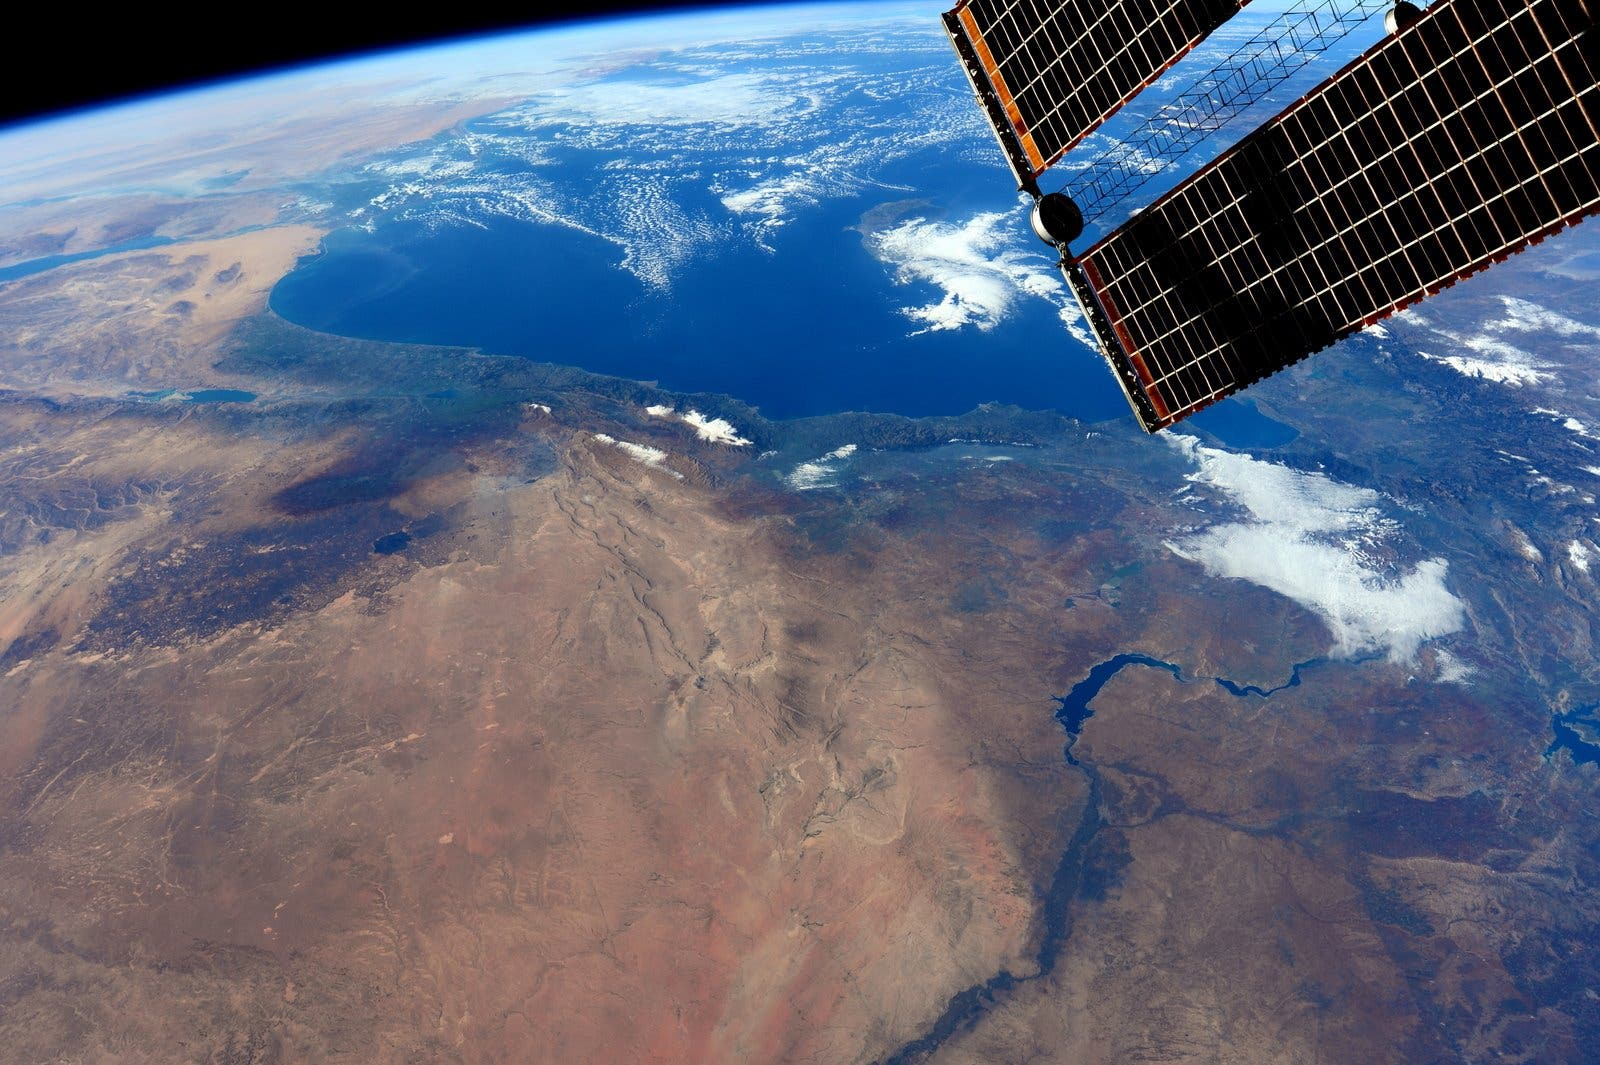 Photo courtesy: NASA/Barry Wilmore international space station ISS